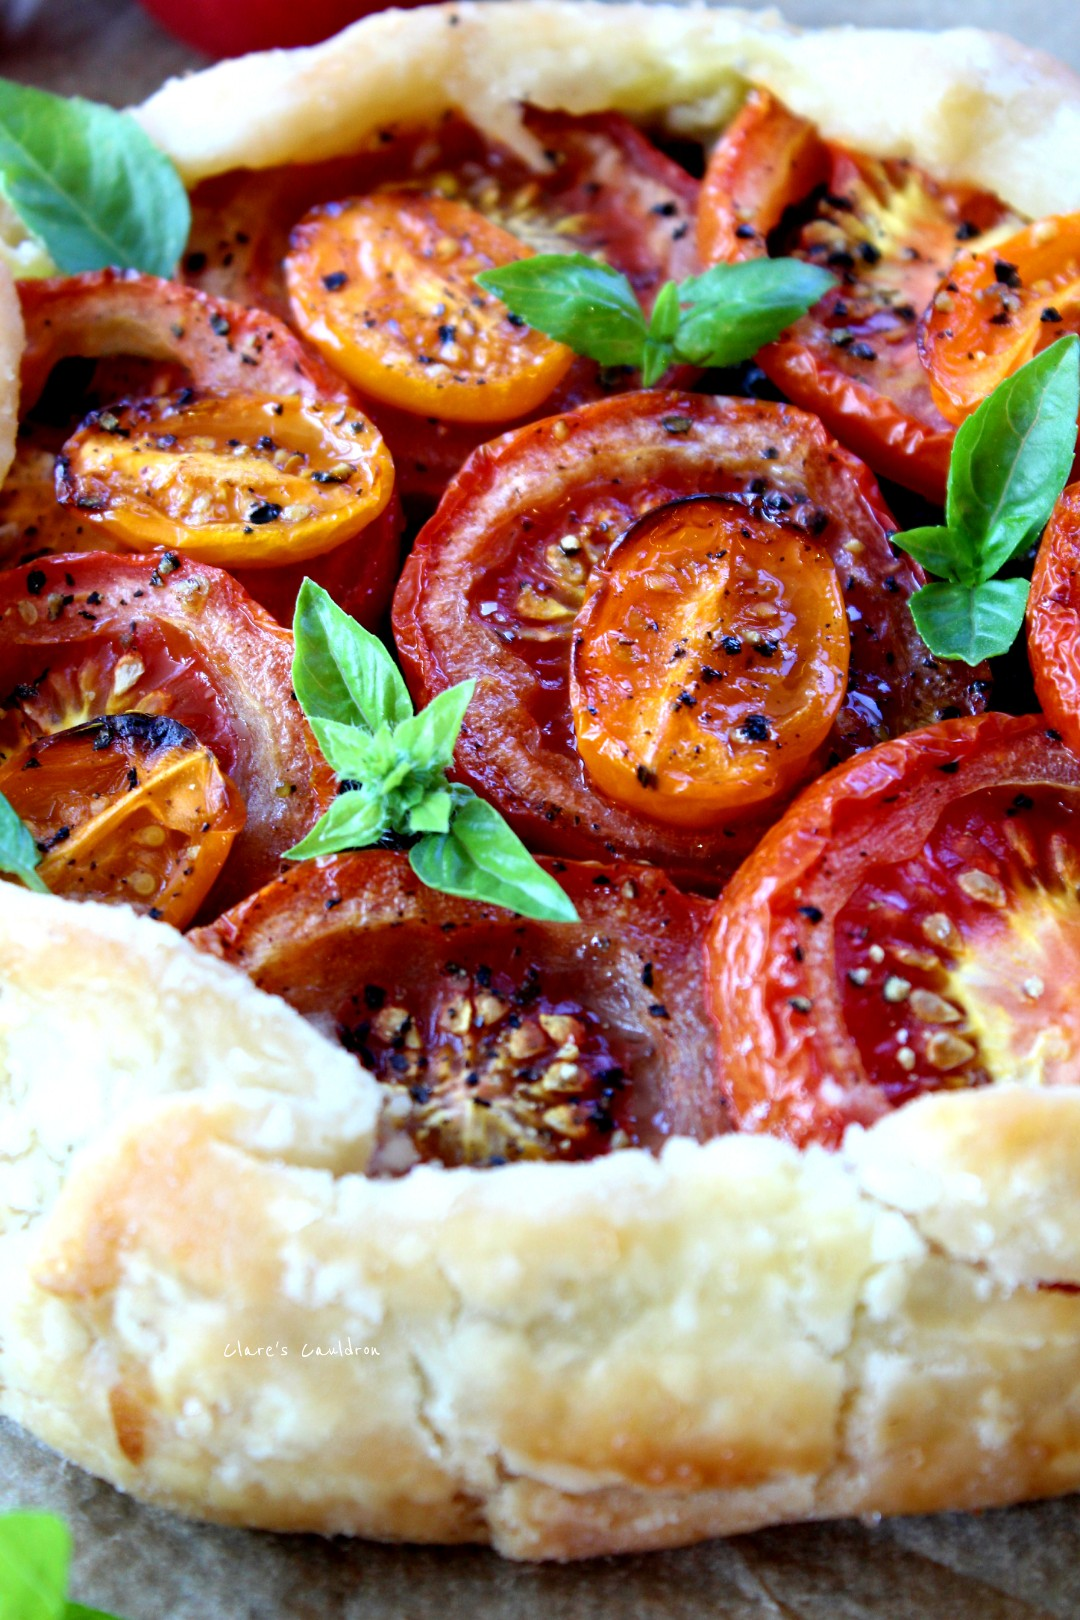 Lets Make Some Pastry……….. Well A Tomato And Pesto Galette